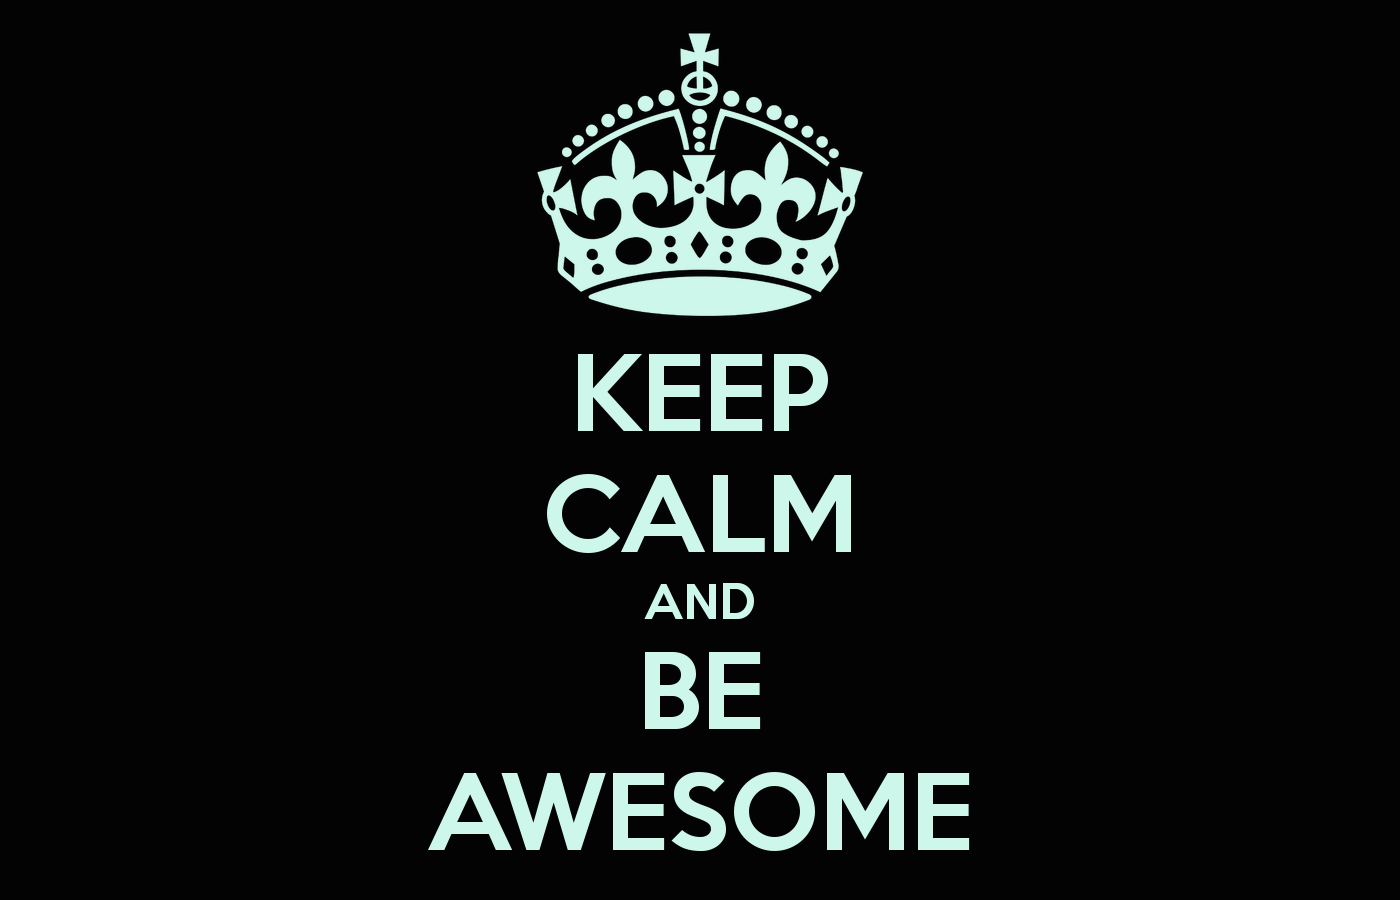 keep-calm-and-be-awesome-4111